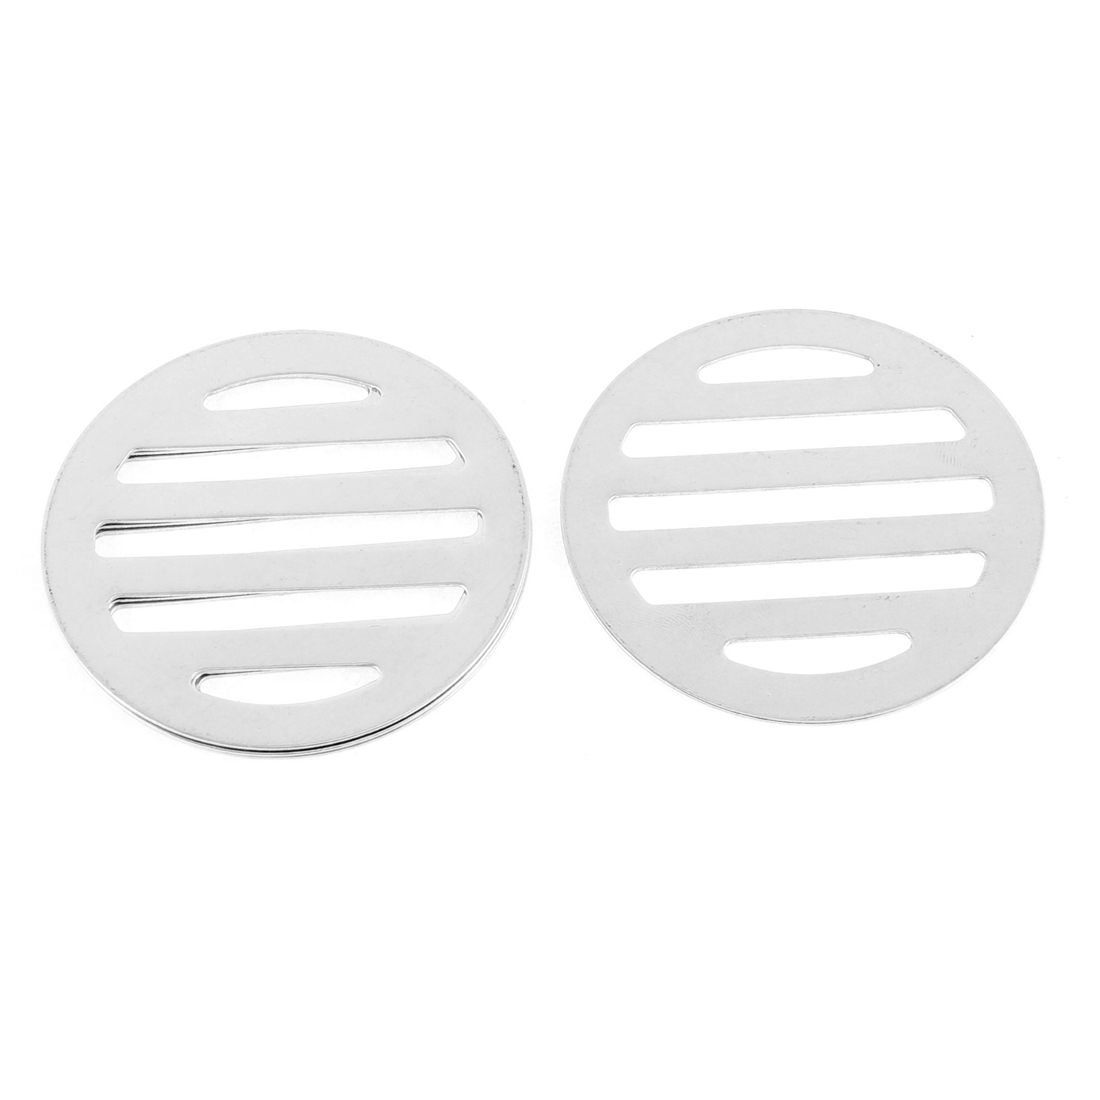 "Stainless Steel Kitchen Bathroom Round Floor Drain Cover 2.4"" 6.2cm 4Pcs"